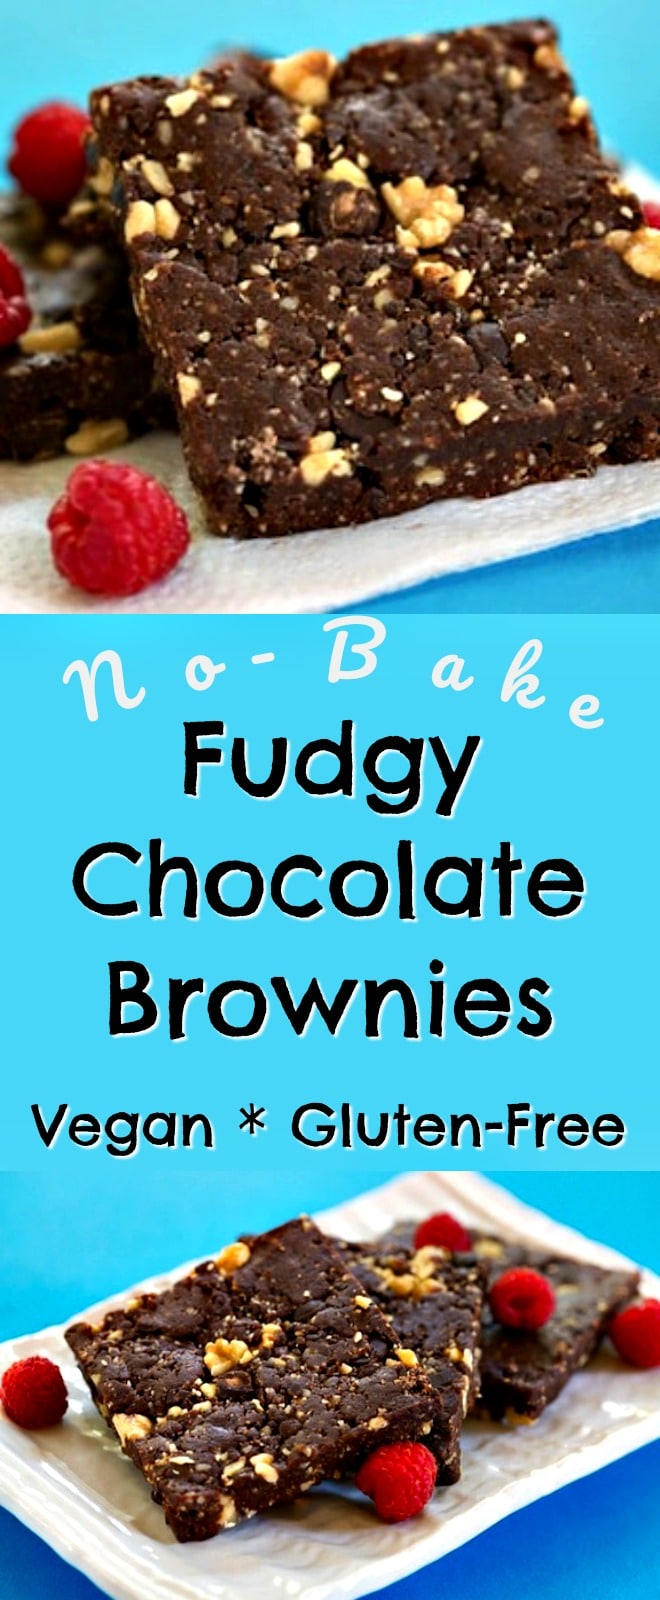 No-Bake Fudge Brownies that are vegan and gluten-free. These are great for a summer treat when it's too hot to bake. | Vegan brownies, paleo brownies, no-bake brownies, gluten free brownies, grain free brownies.